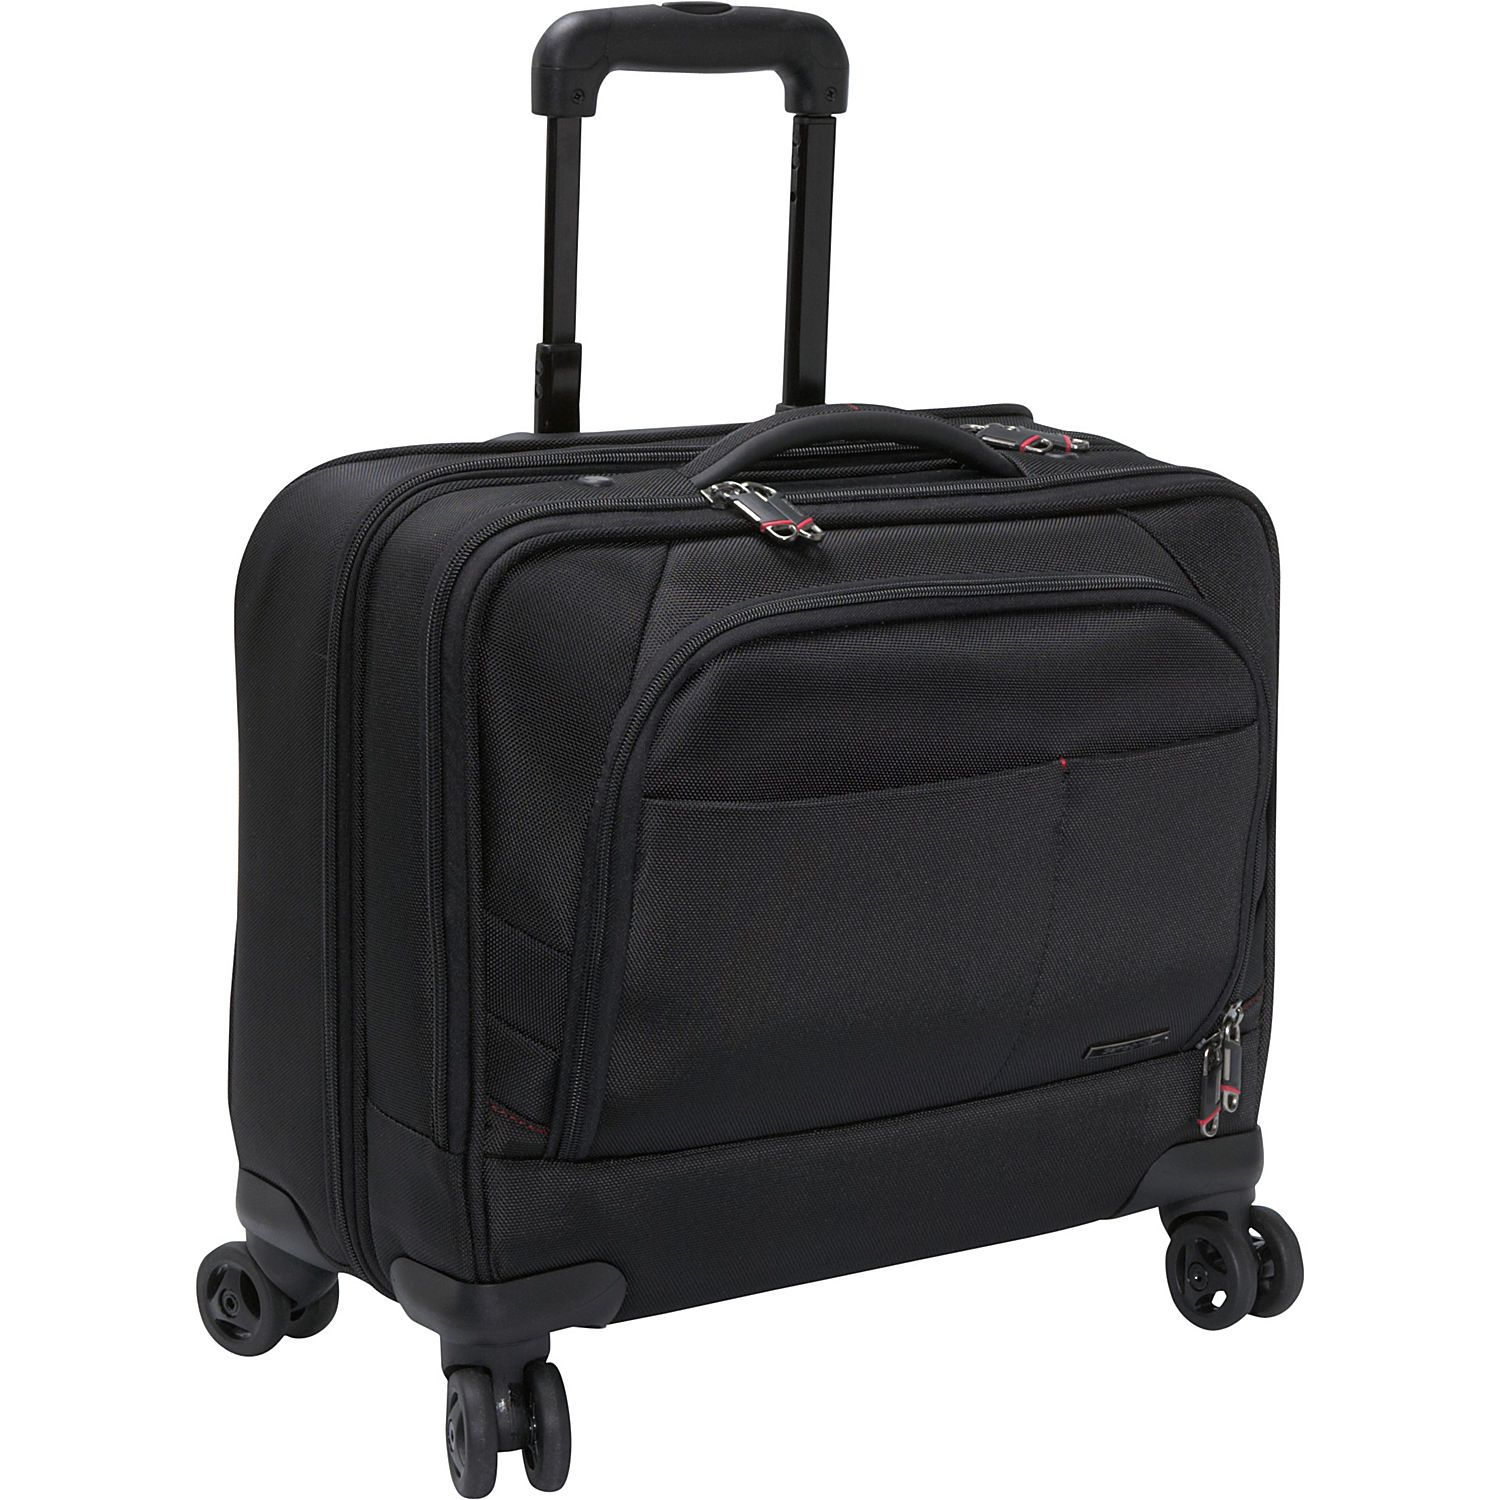 Buy The Samsonite Xenon 2 Spinner Mobile Office Pft At Ebags A